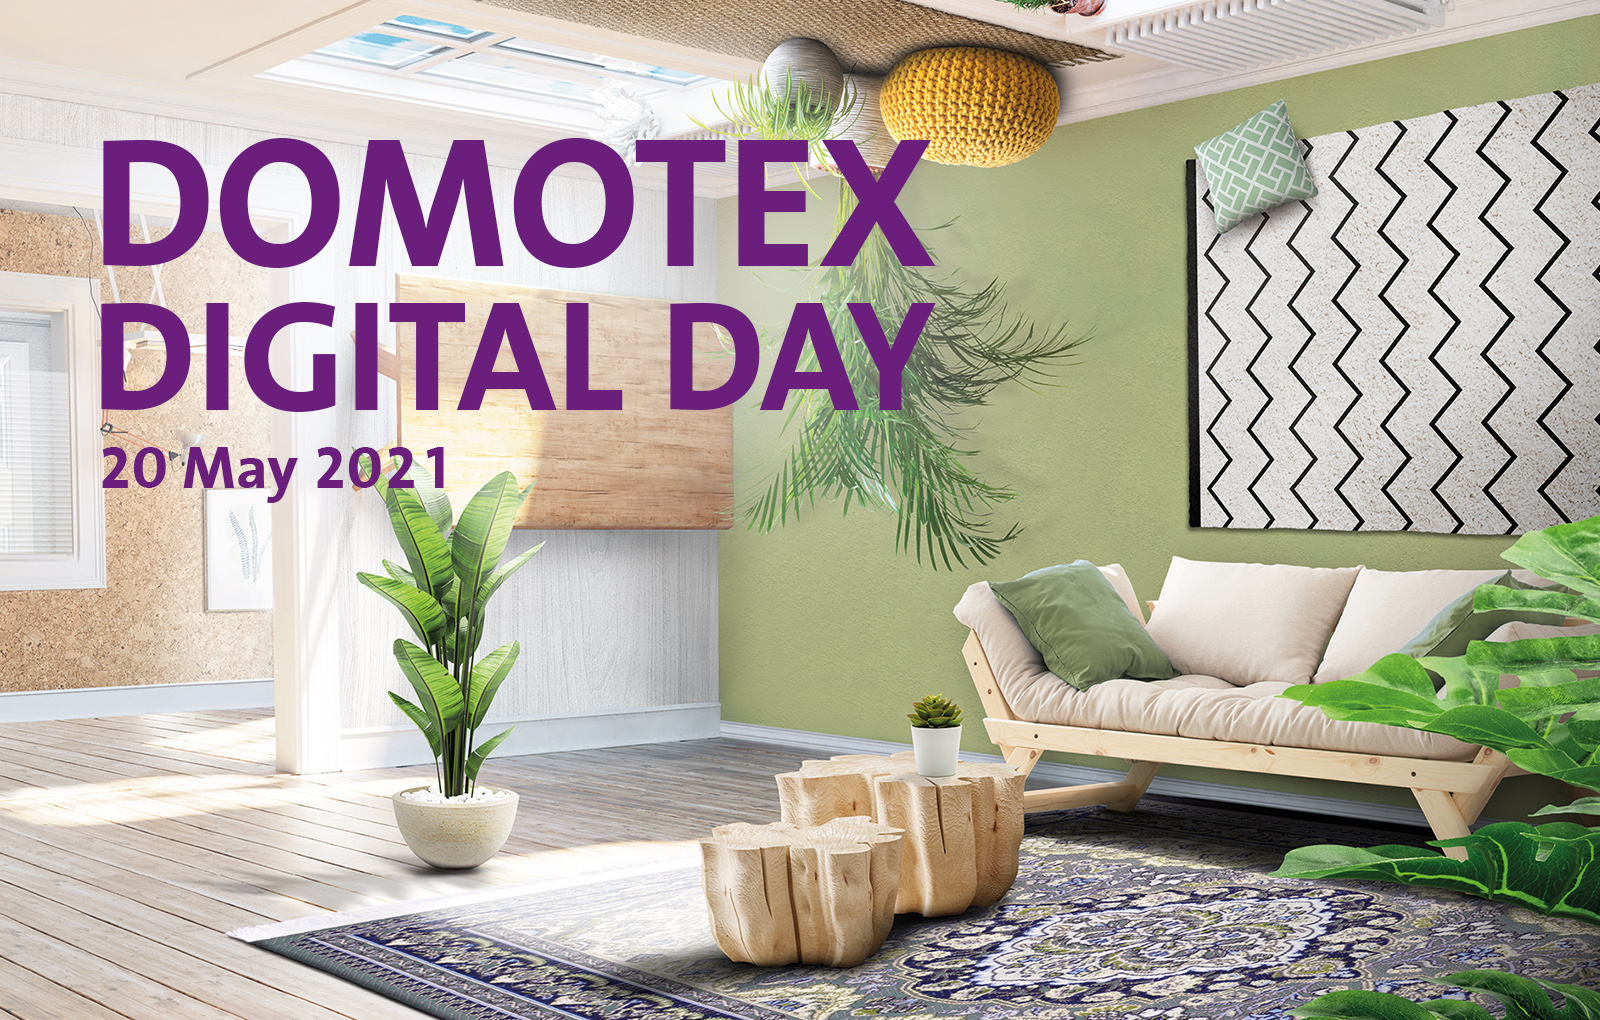 DOMOTEX DIGITAL DAY